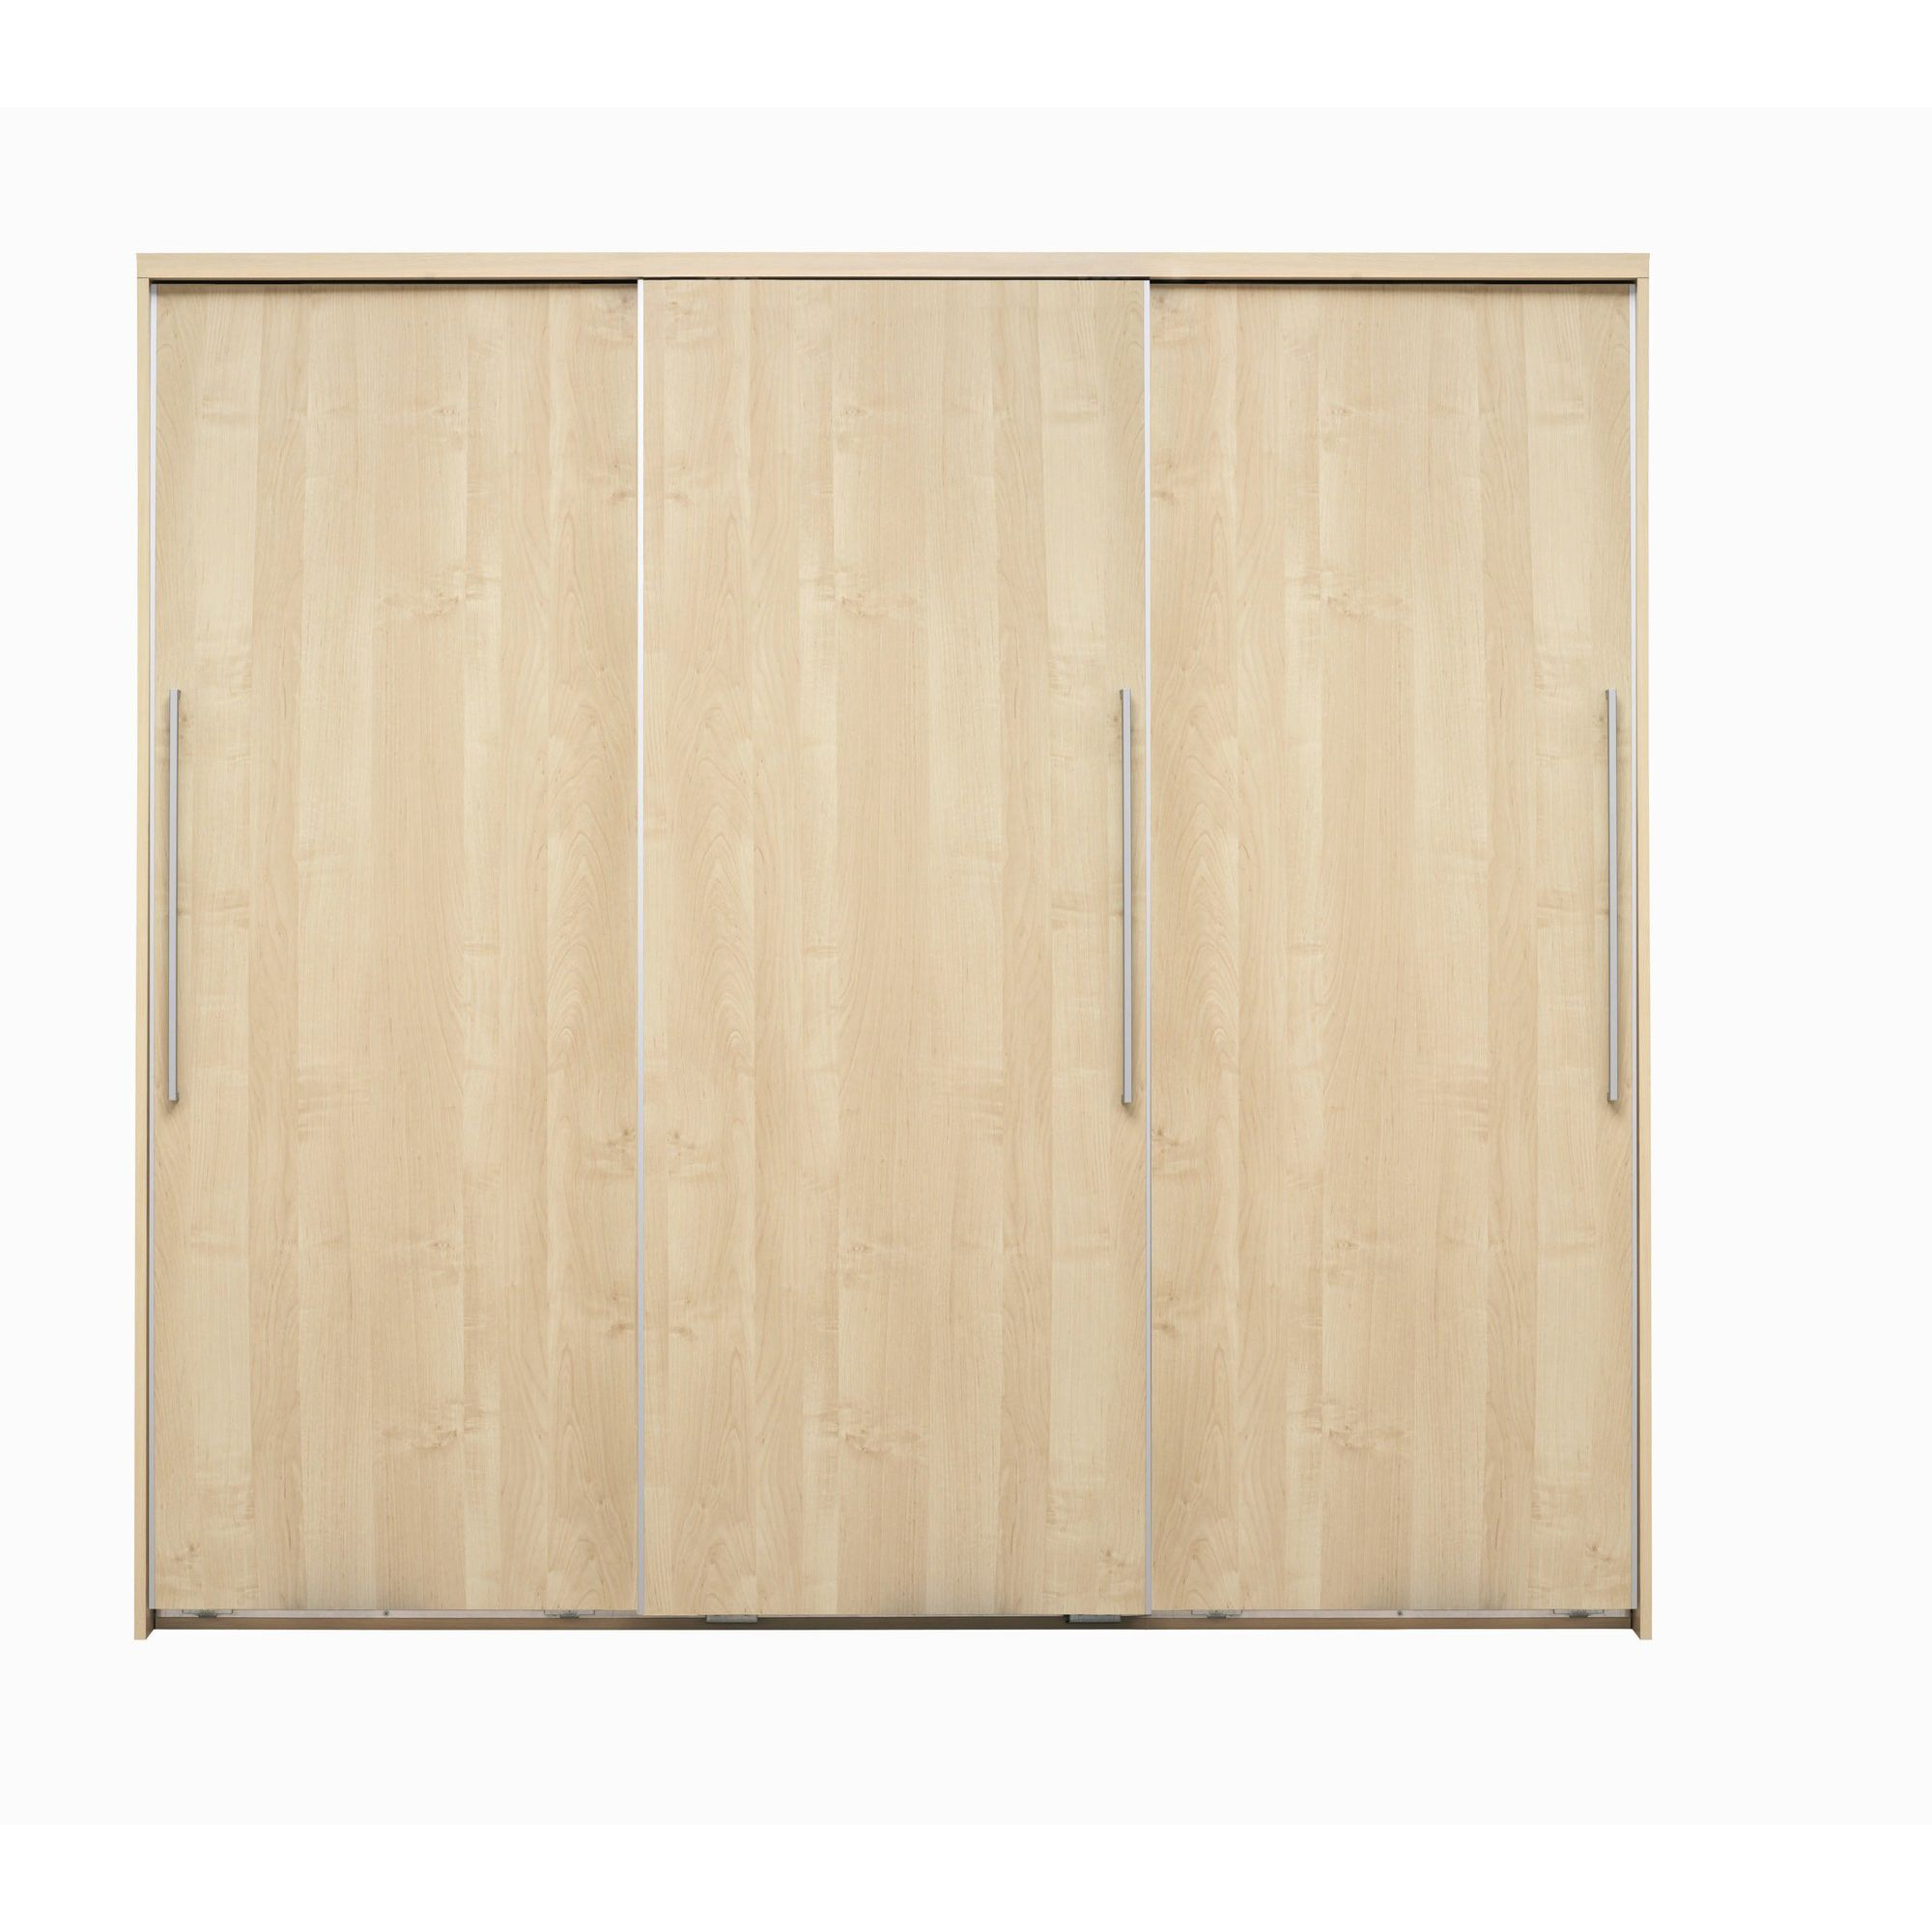 Caxton Strata 3 Door Sliding Wardrobe in Pear Wood at Tesco Direct